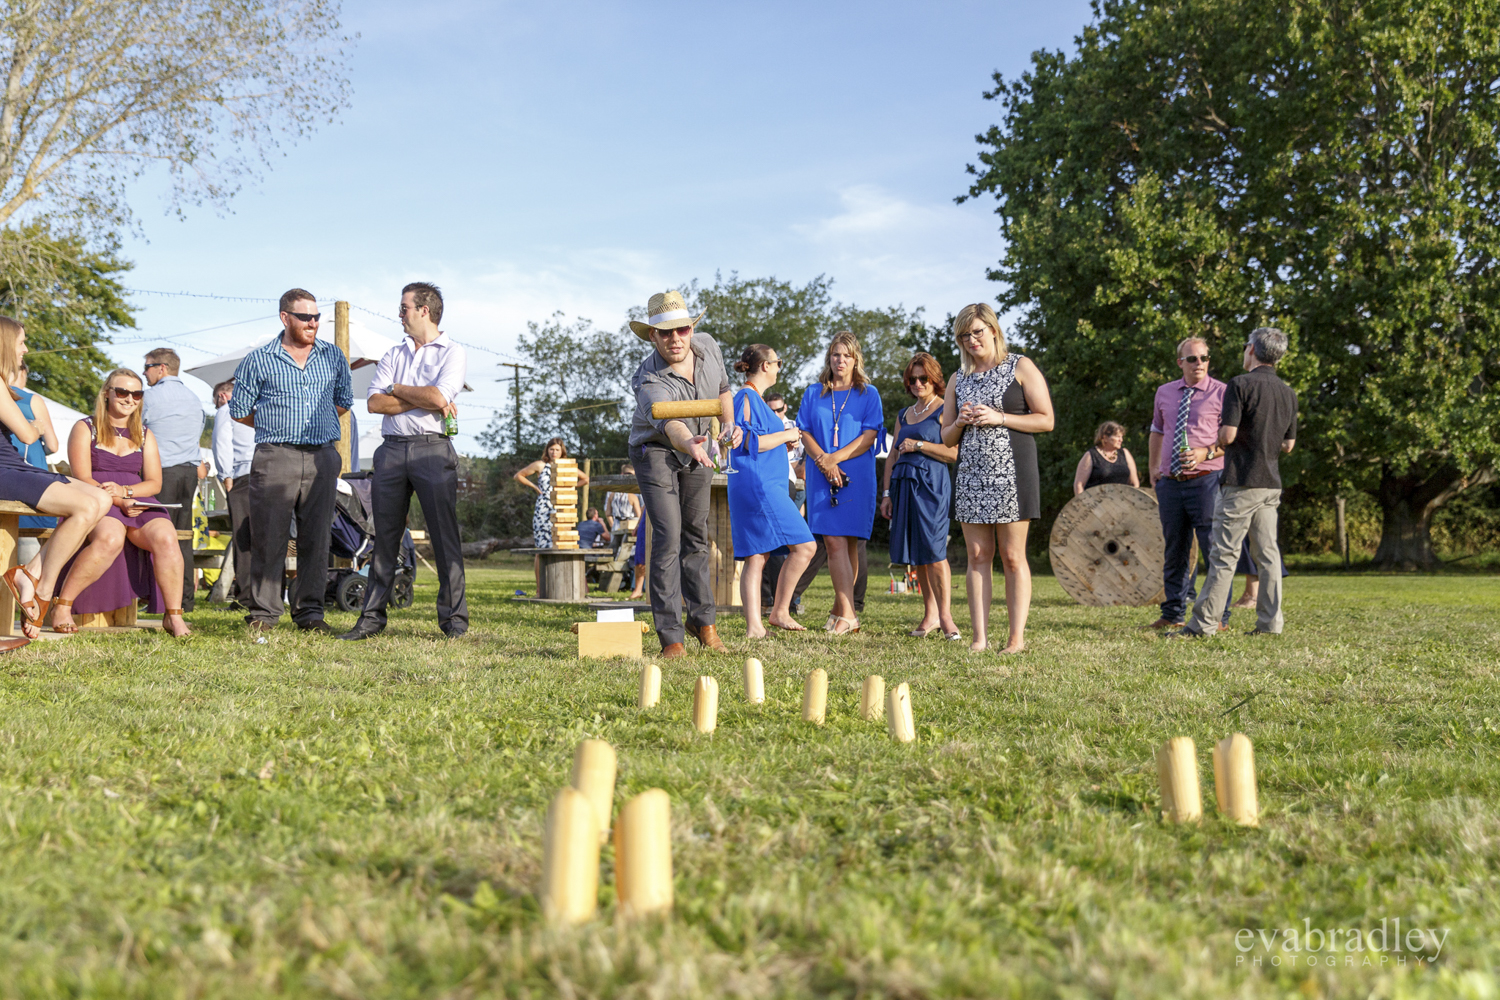 wedding-lawn-games-nz